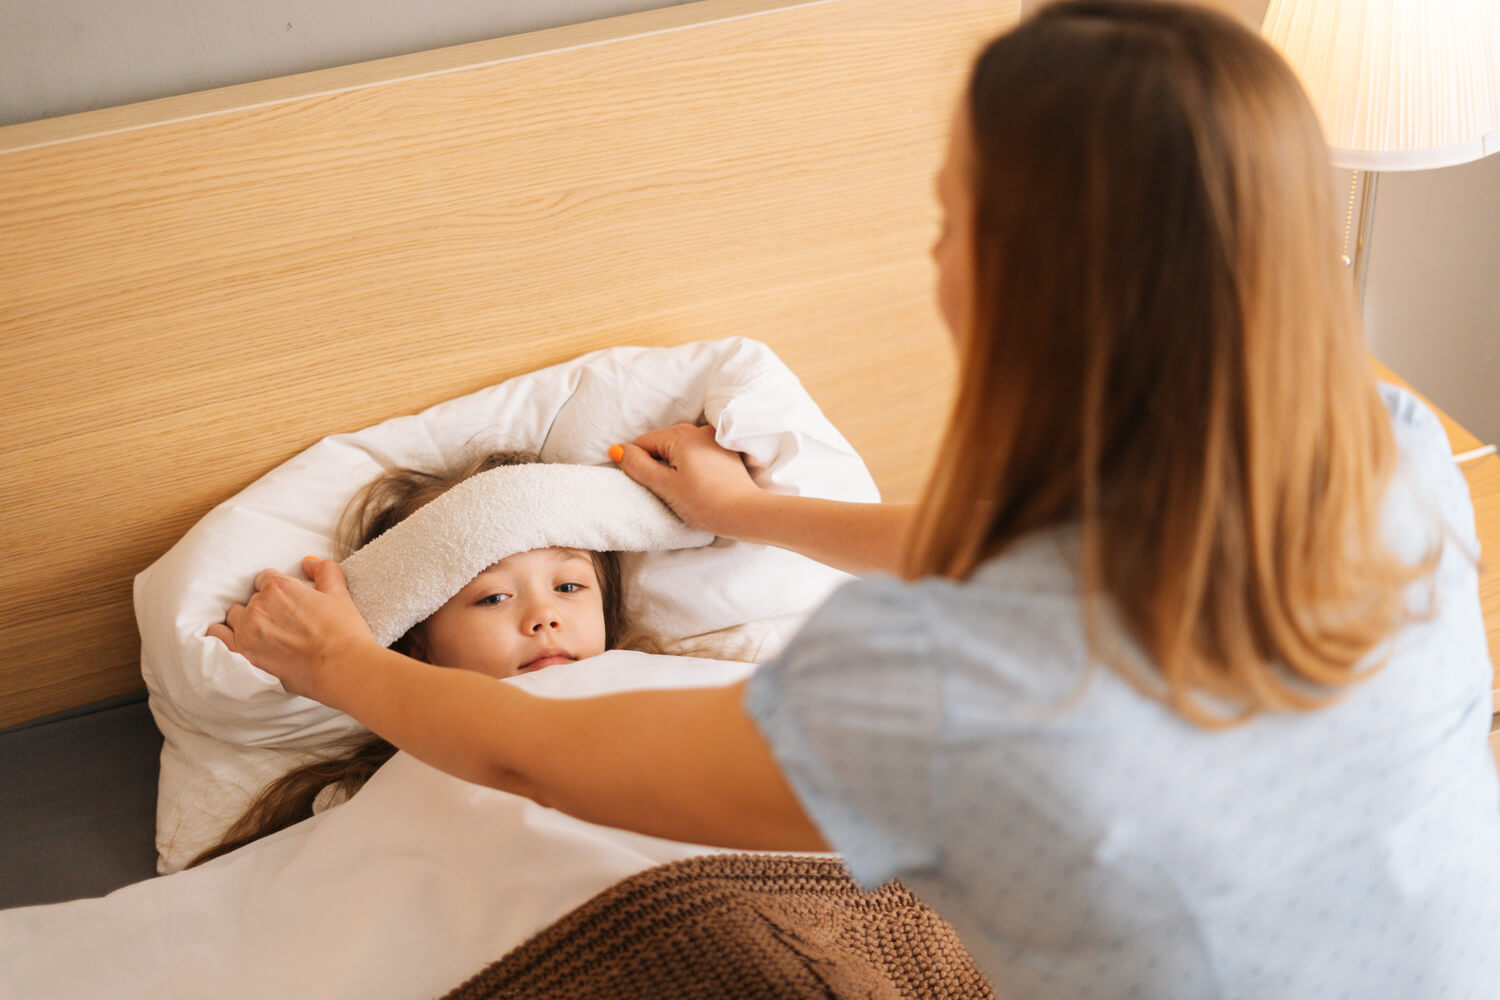 mom putting compress on forehead of sick baby